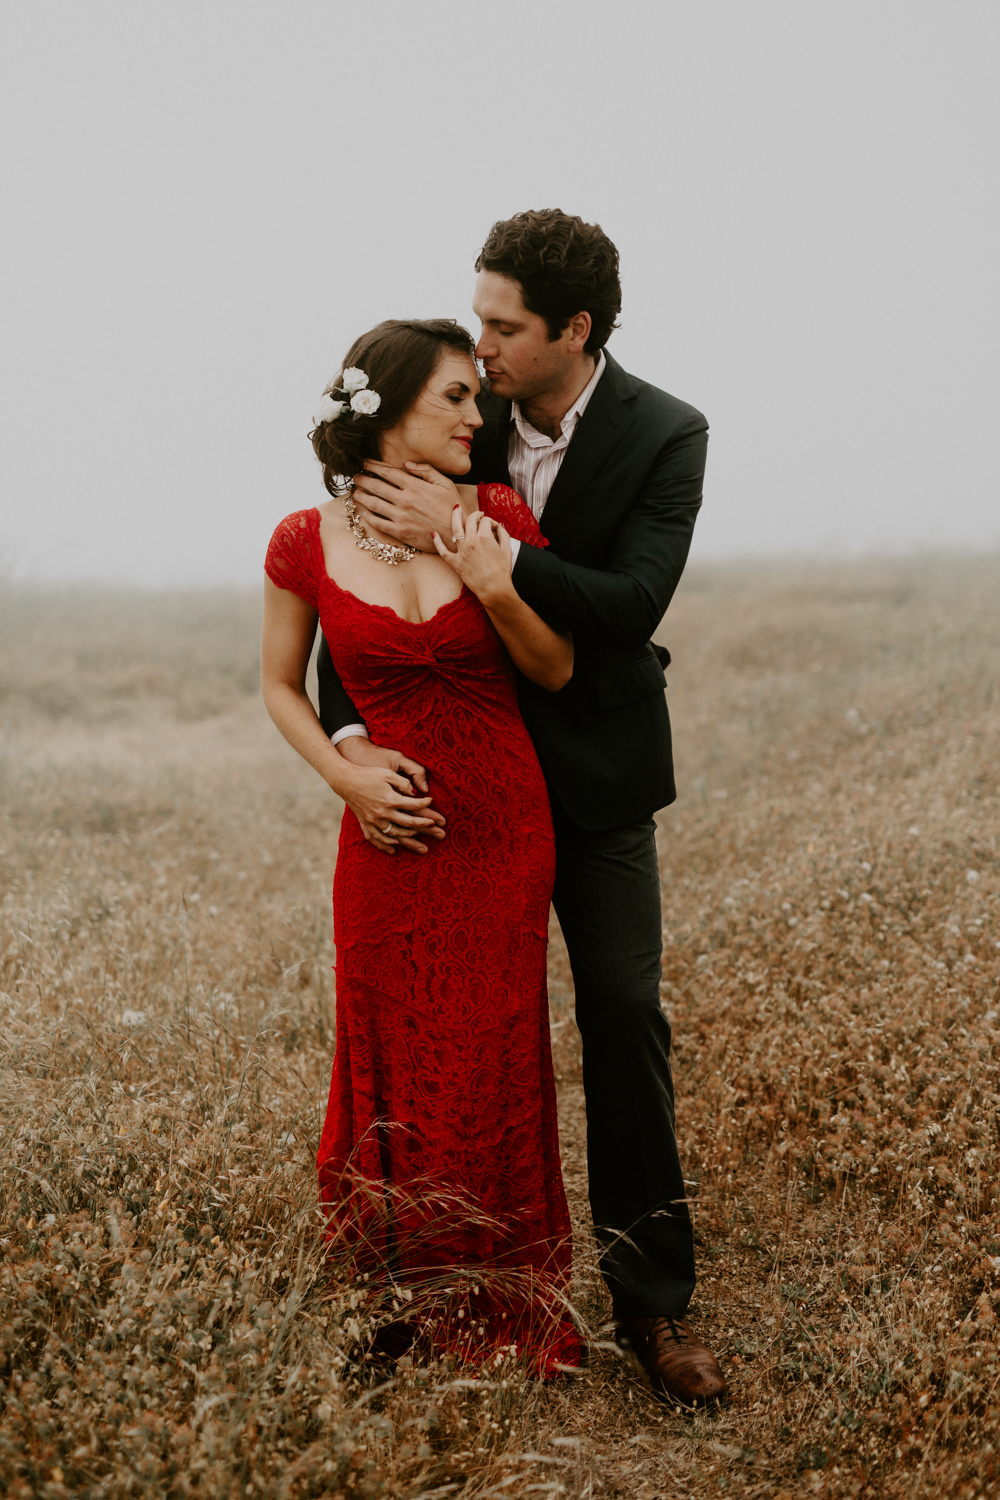 couple-intimate-engagement-session-mt-tam-8.jpg